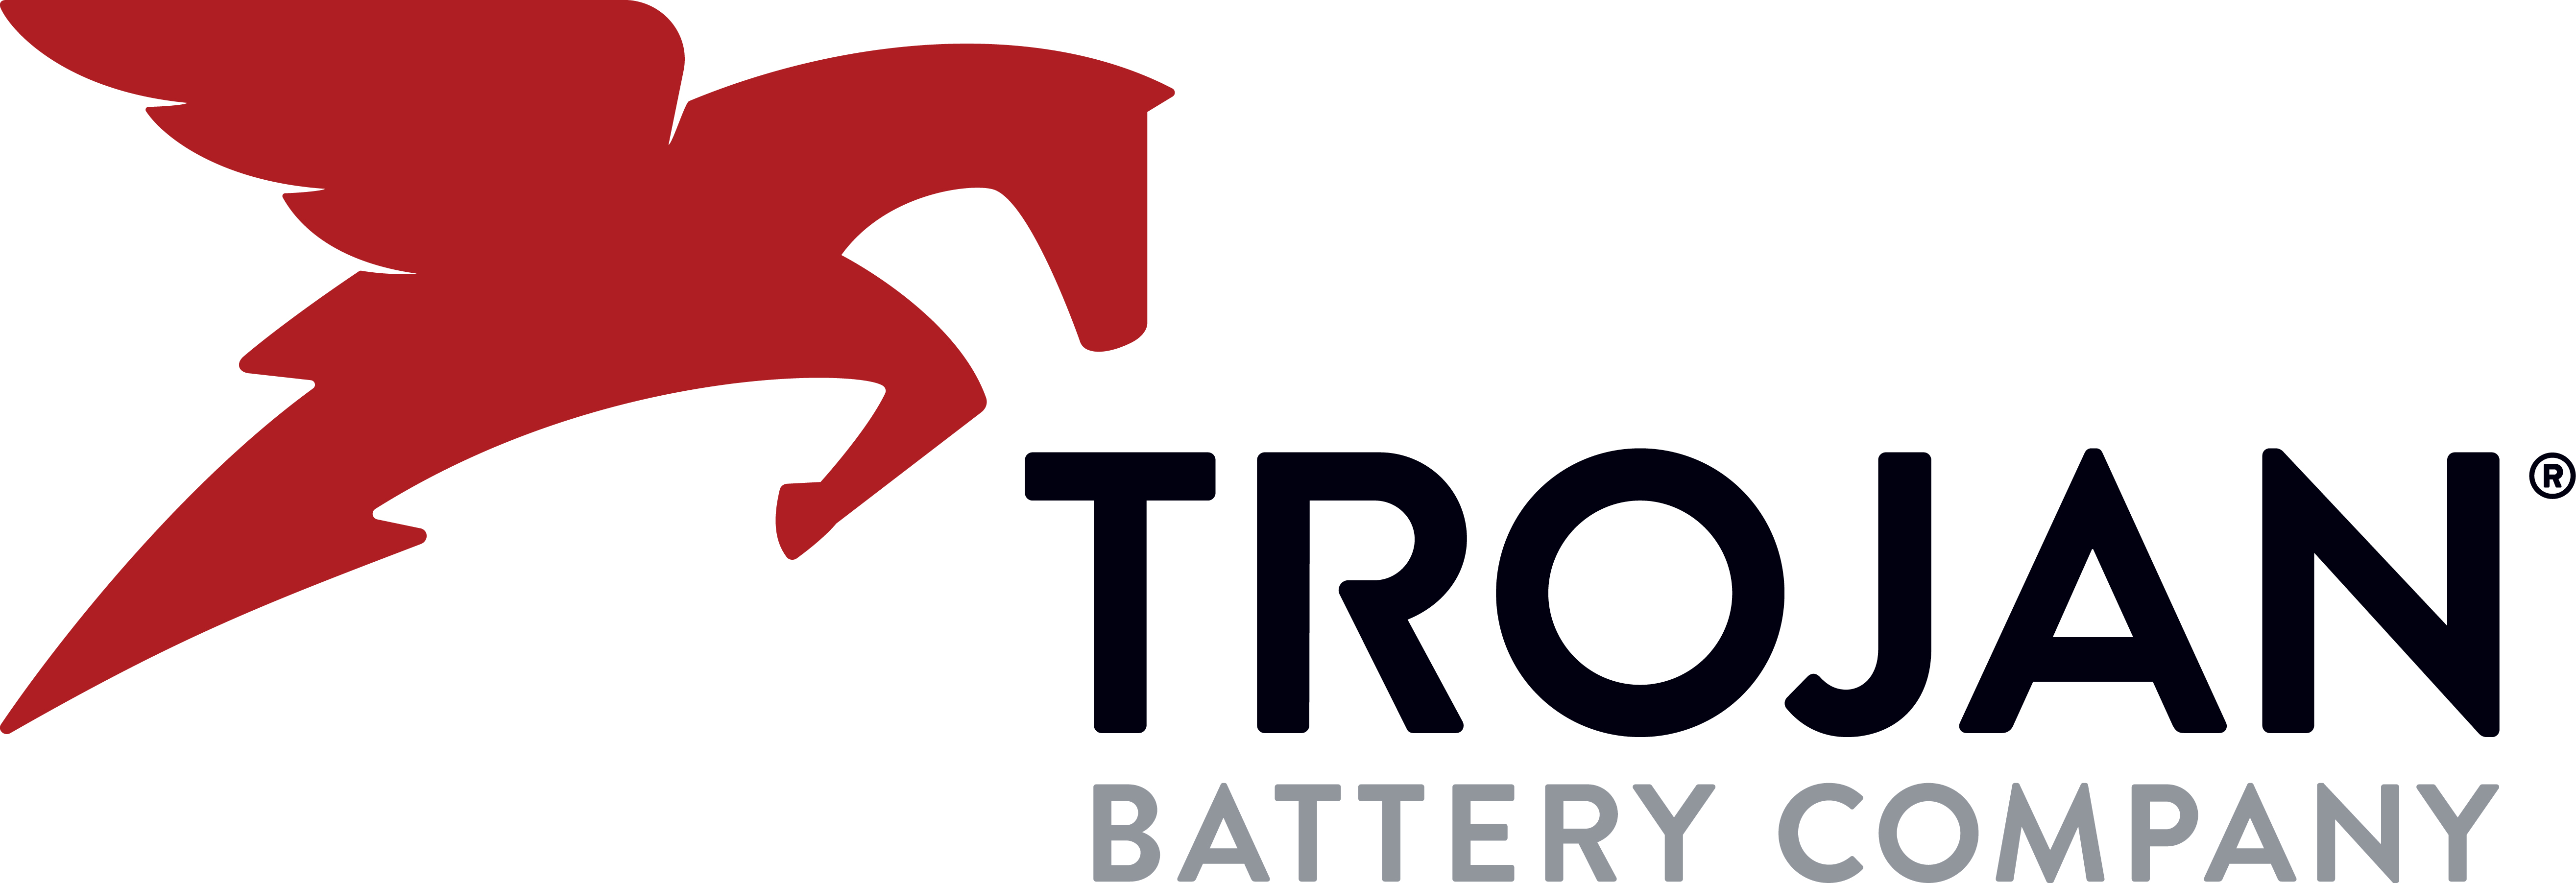 Trojan Battery Company logo